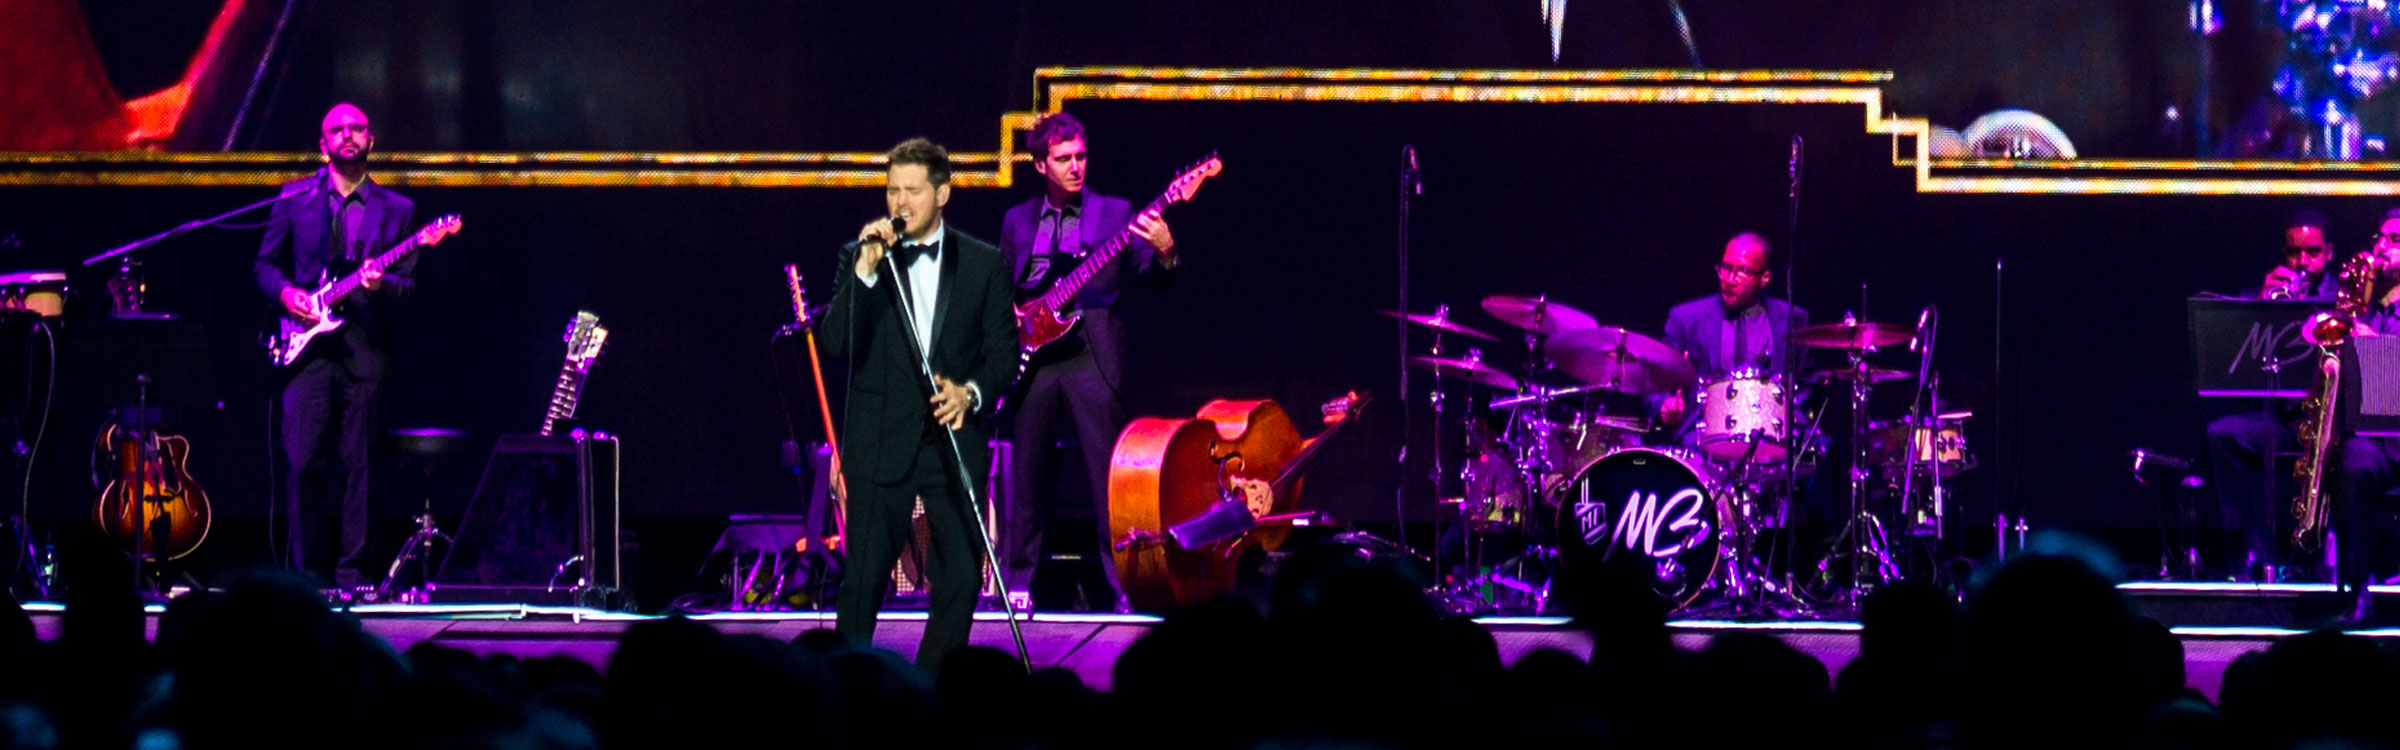 Michael buble header